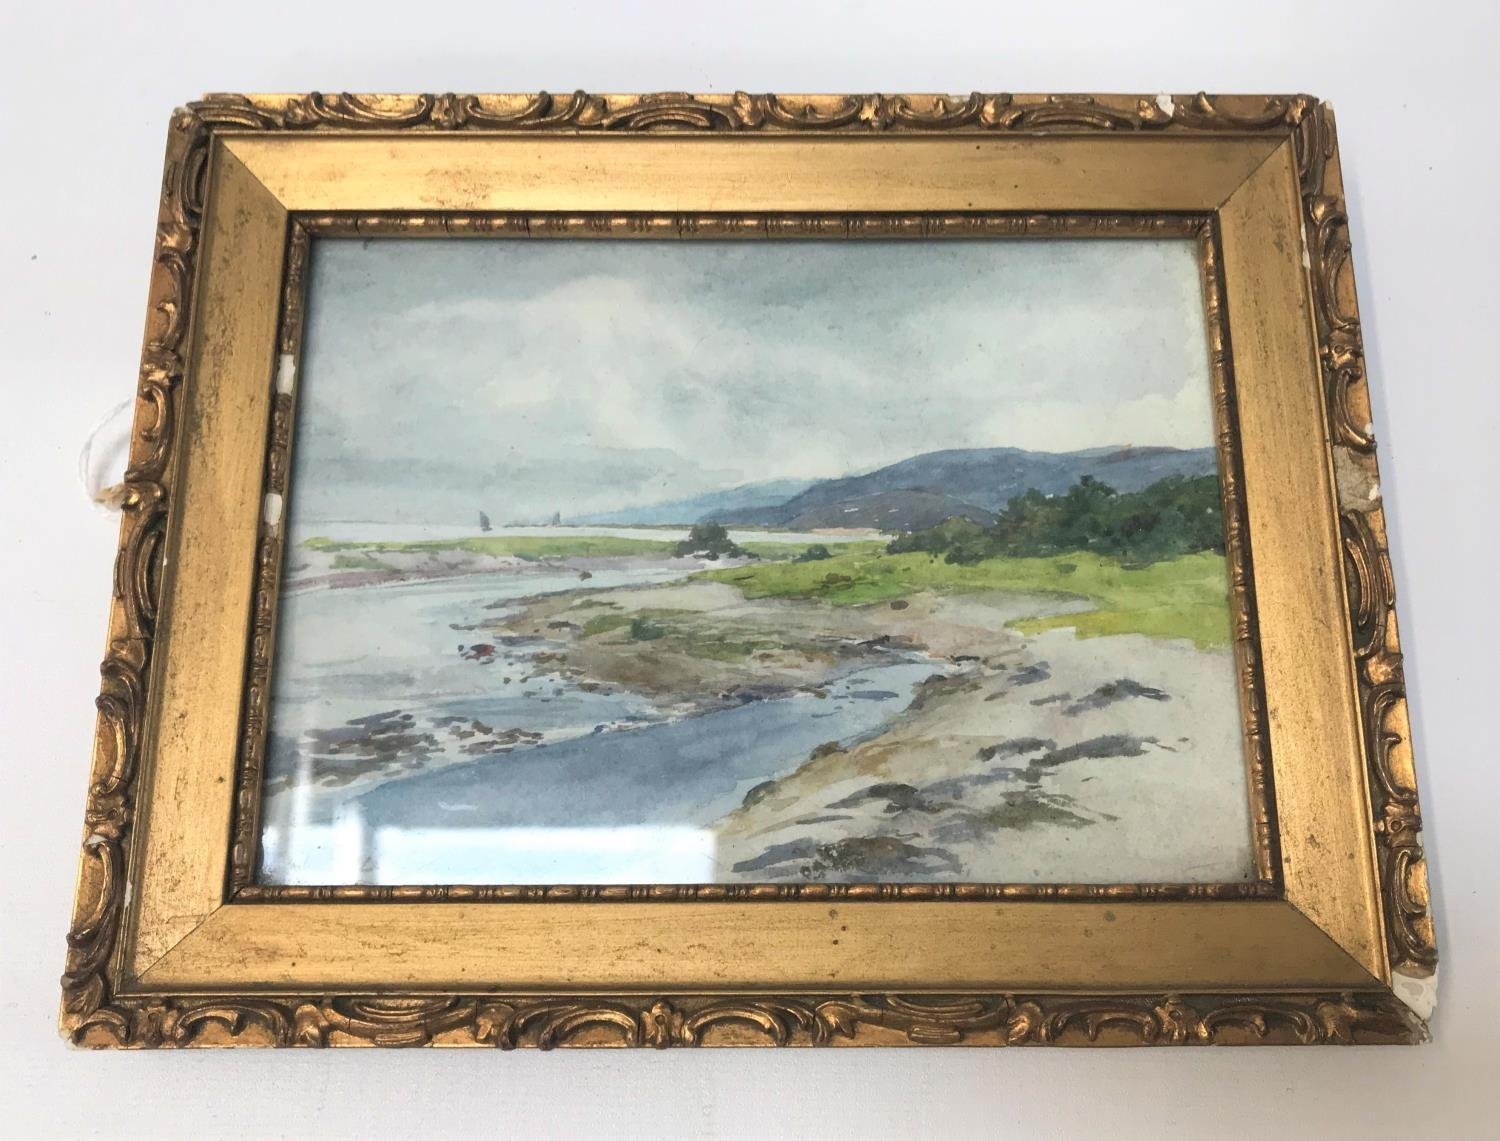 Lot 376 - J N McLAURIN (Scottish, exh.1880-1906) Scottish coastal scene with boats in distance, watercolour,